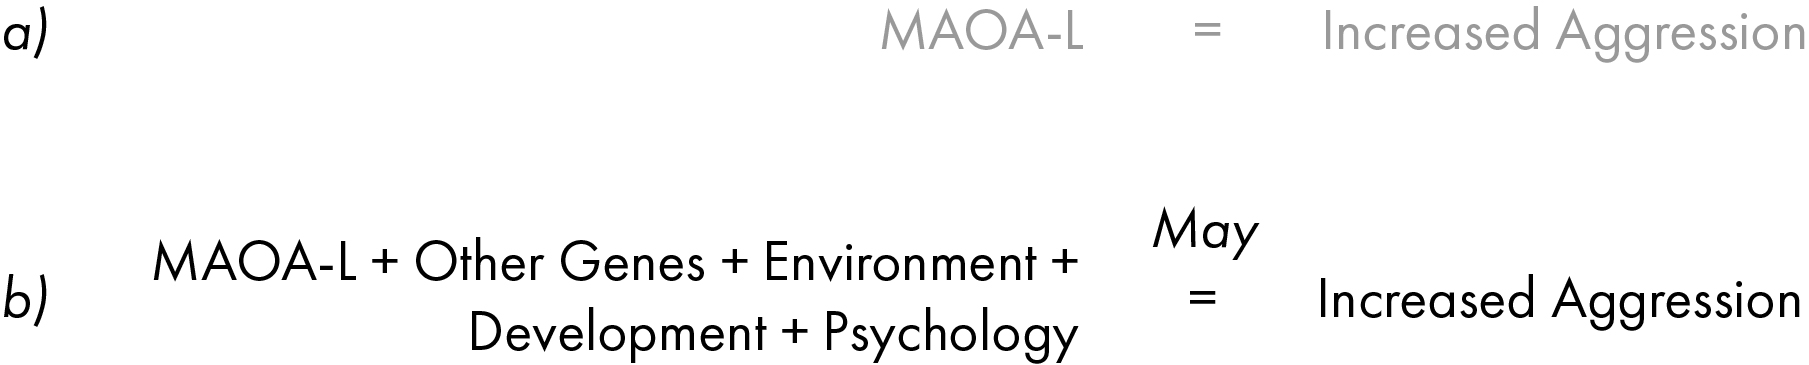 Complex relationship between MAOA and aggression.